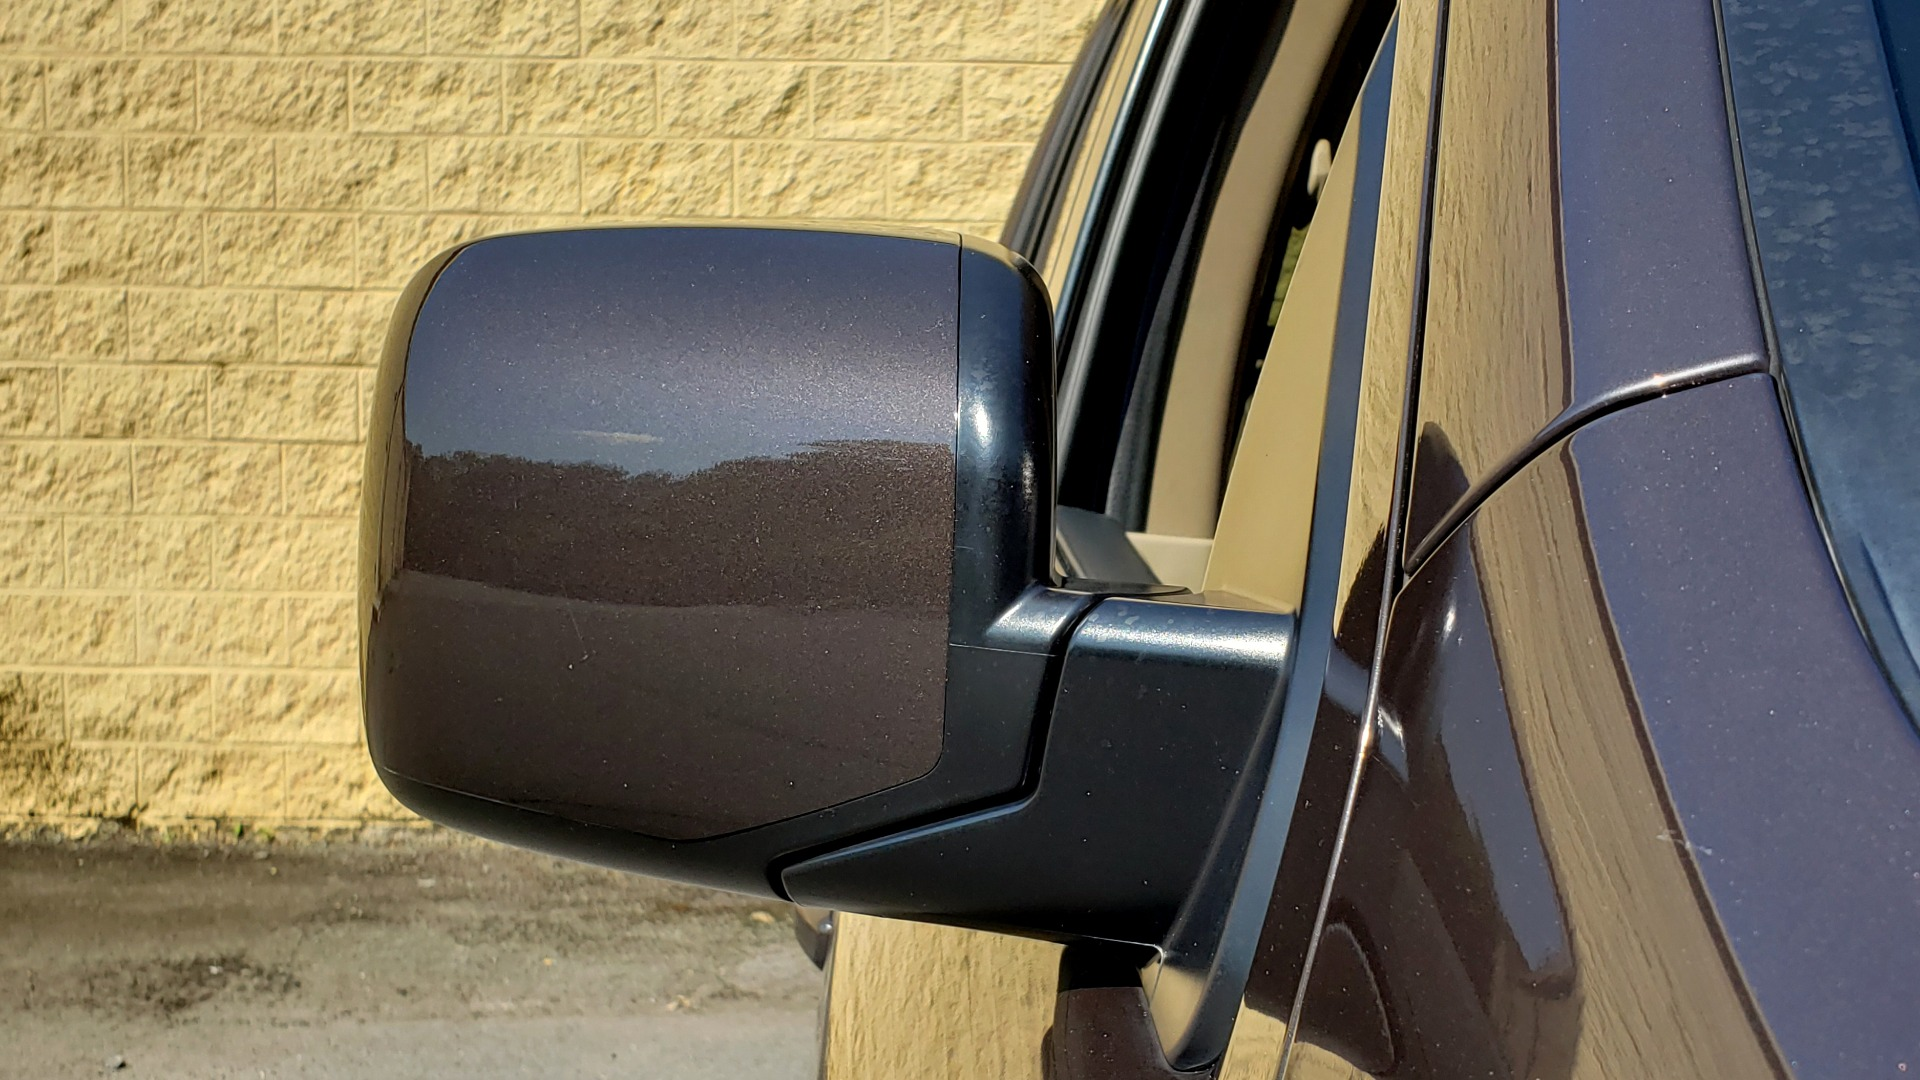 Used 2014 Honda PILOT EX-L / SUNROOF / HTD STS / DUAL-ZONE CLIMATE / REARVIEW for sale $16,995 at Formula Imports in Charlotte NC 28227 21